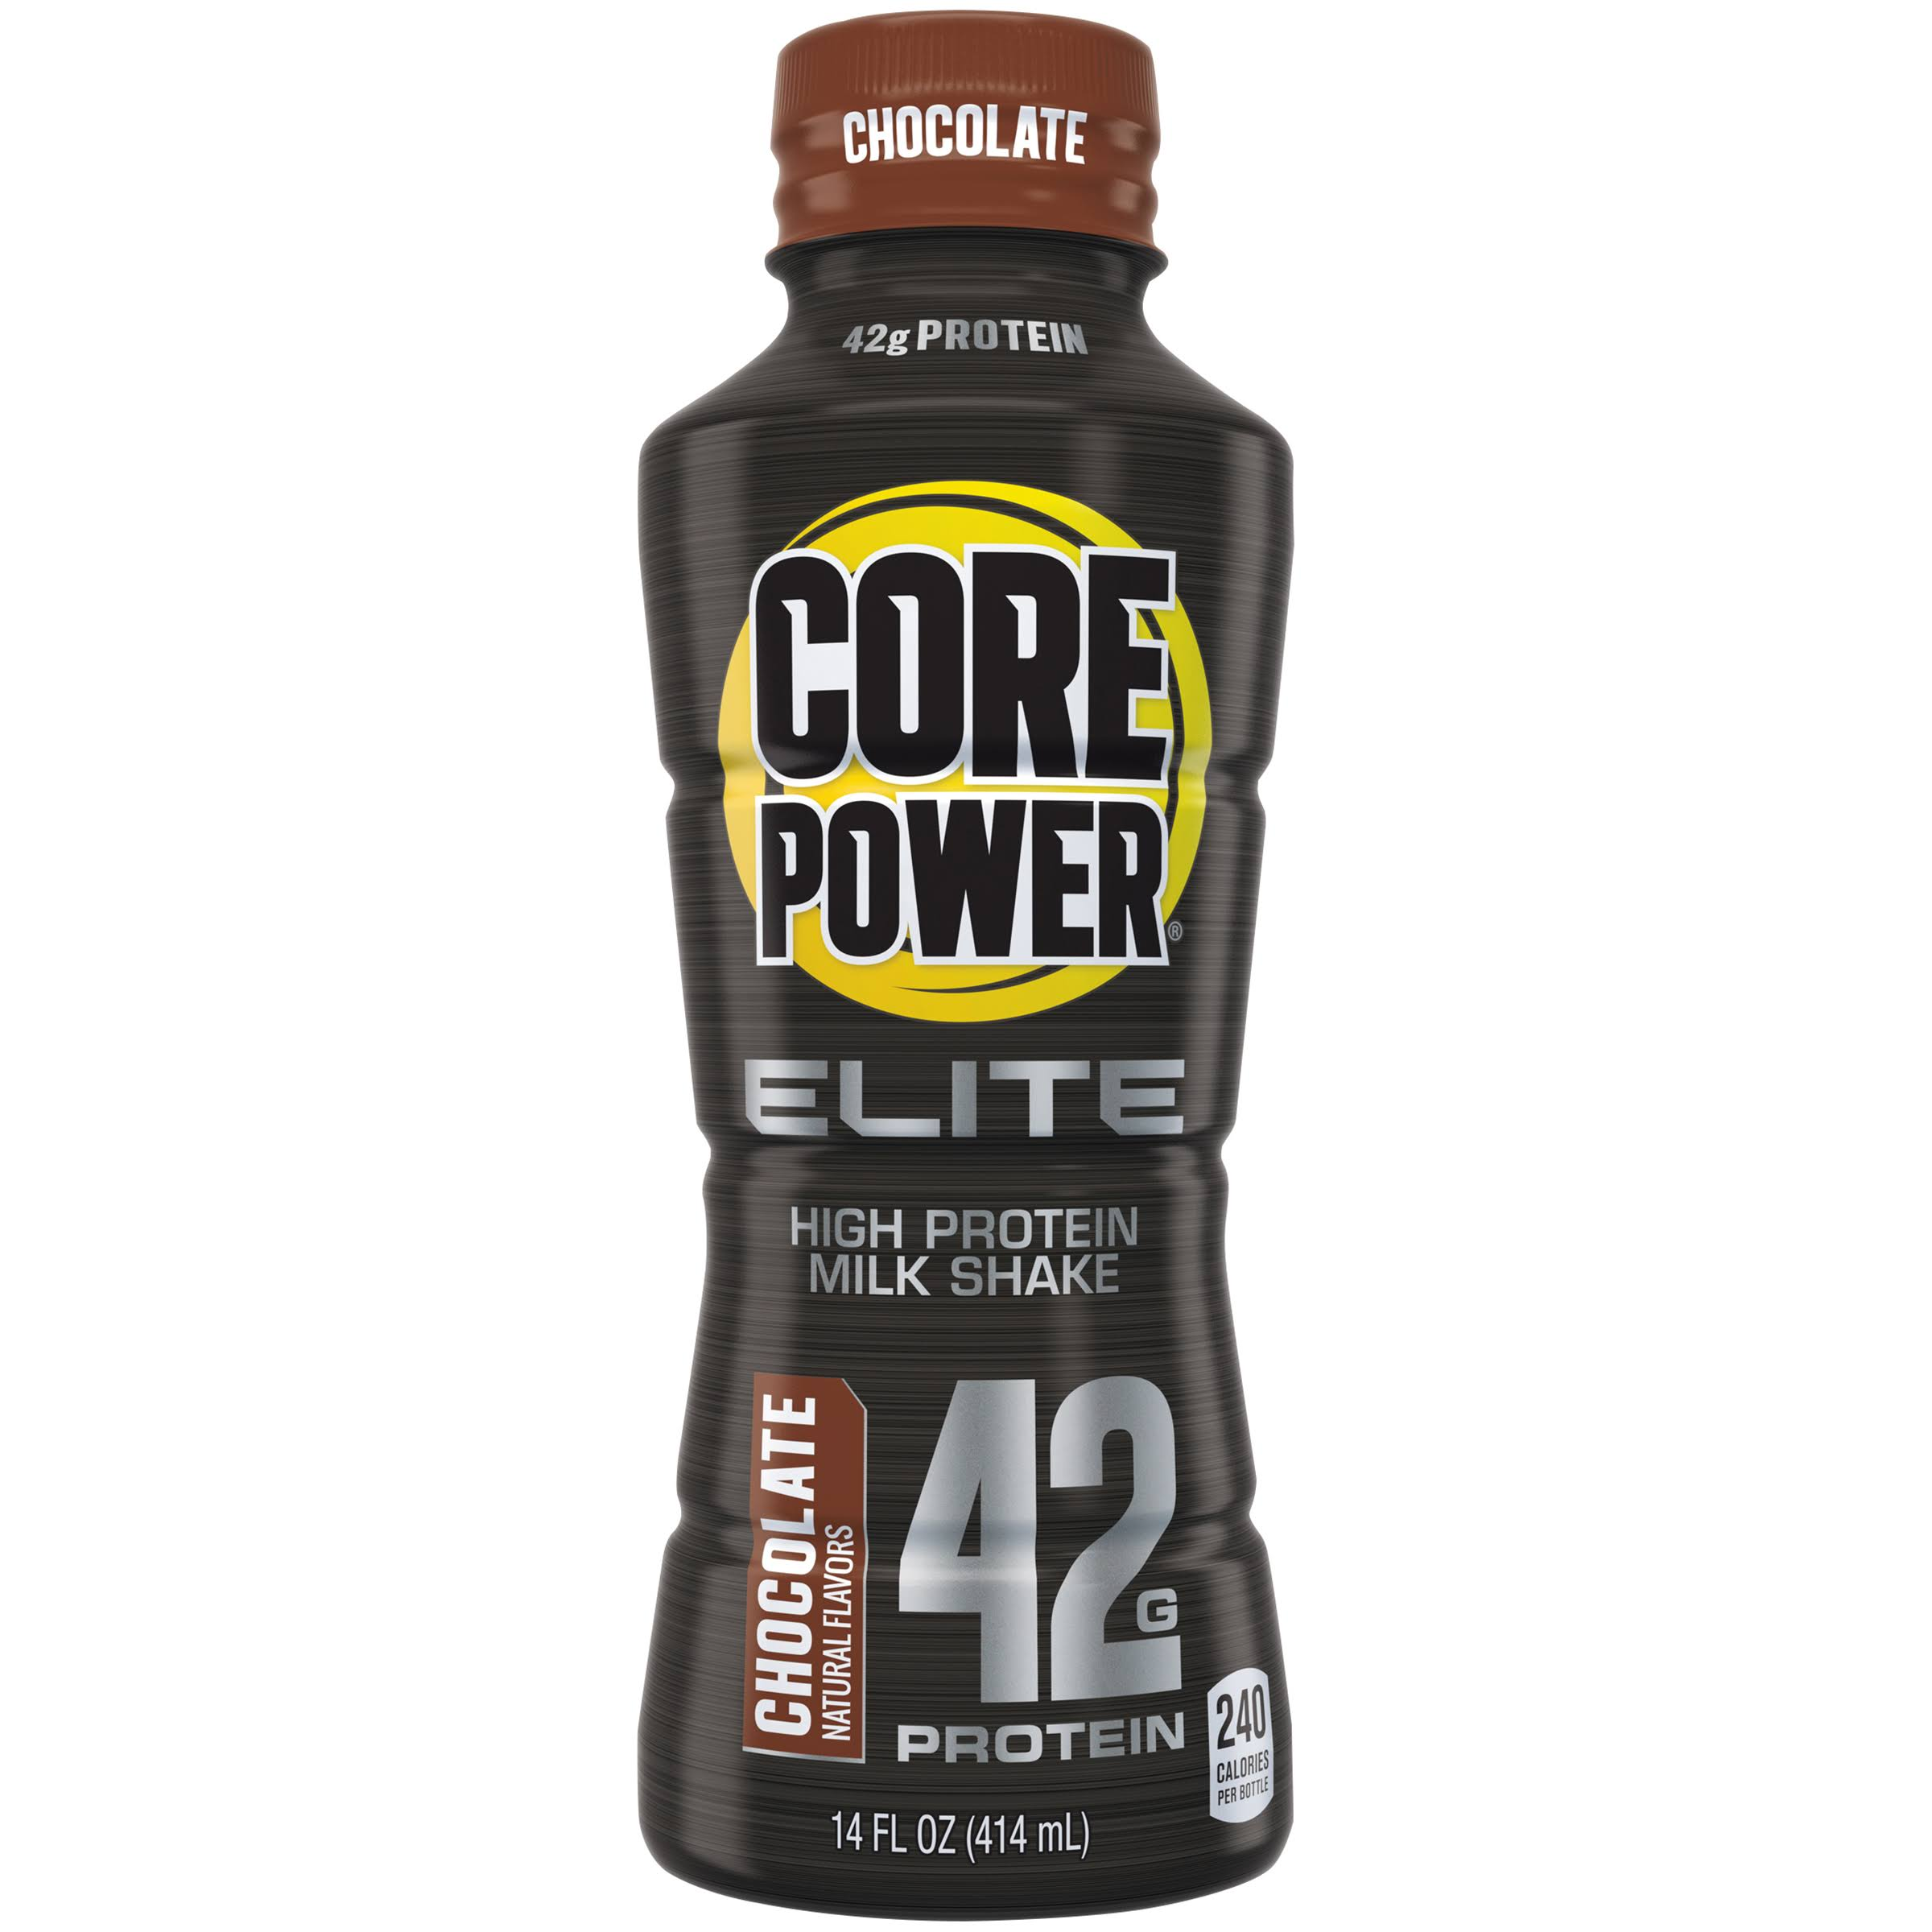 Core Power Elite High Protein Milk Shake - Chocolate